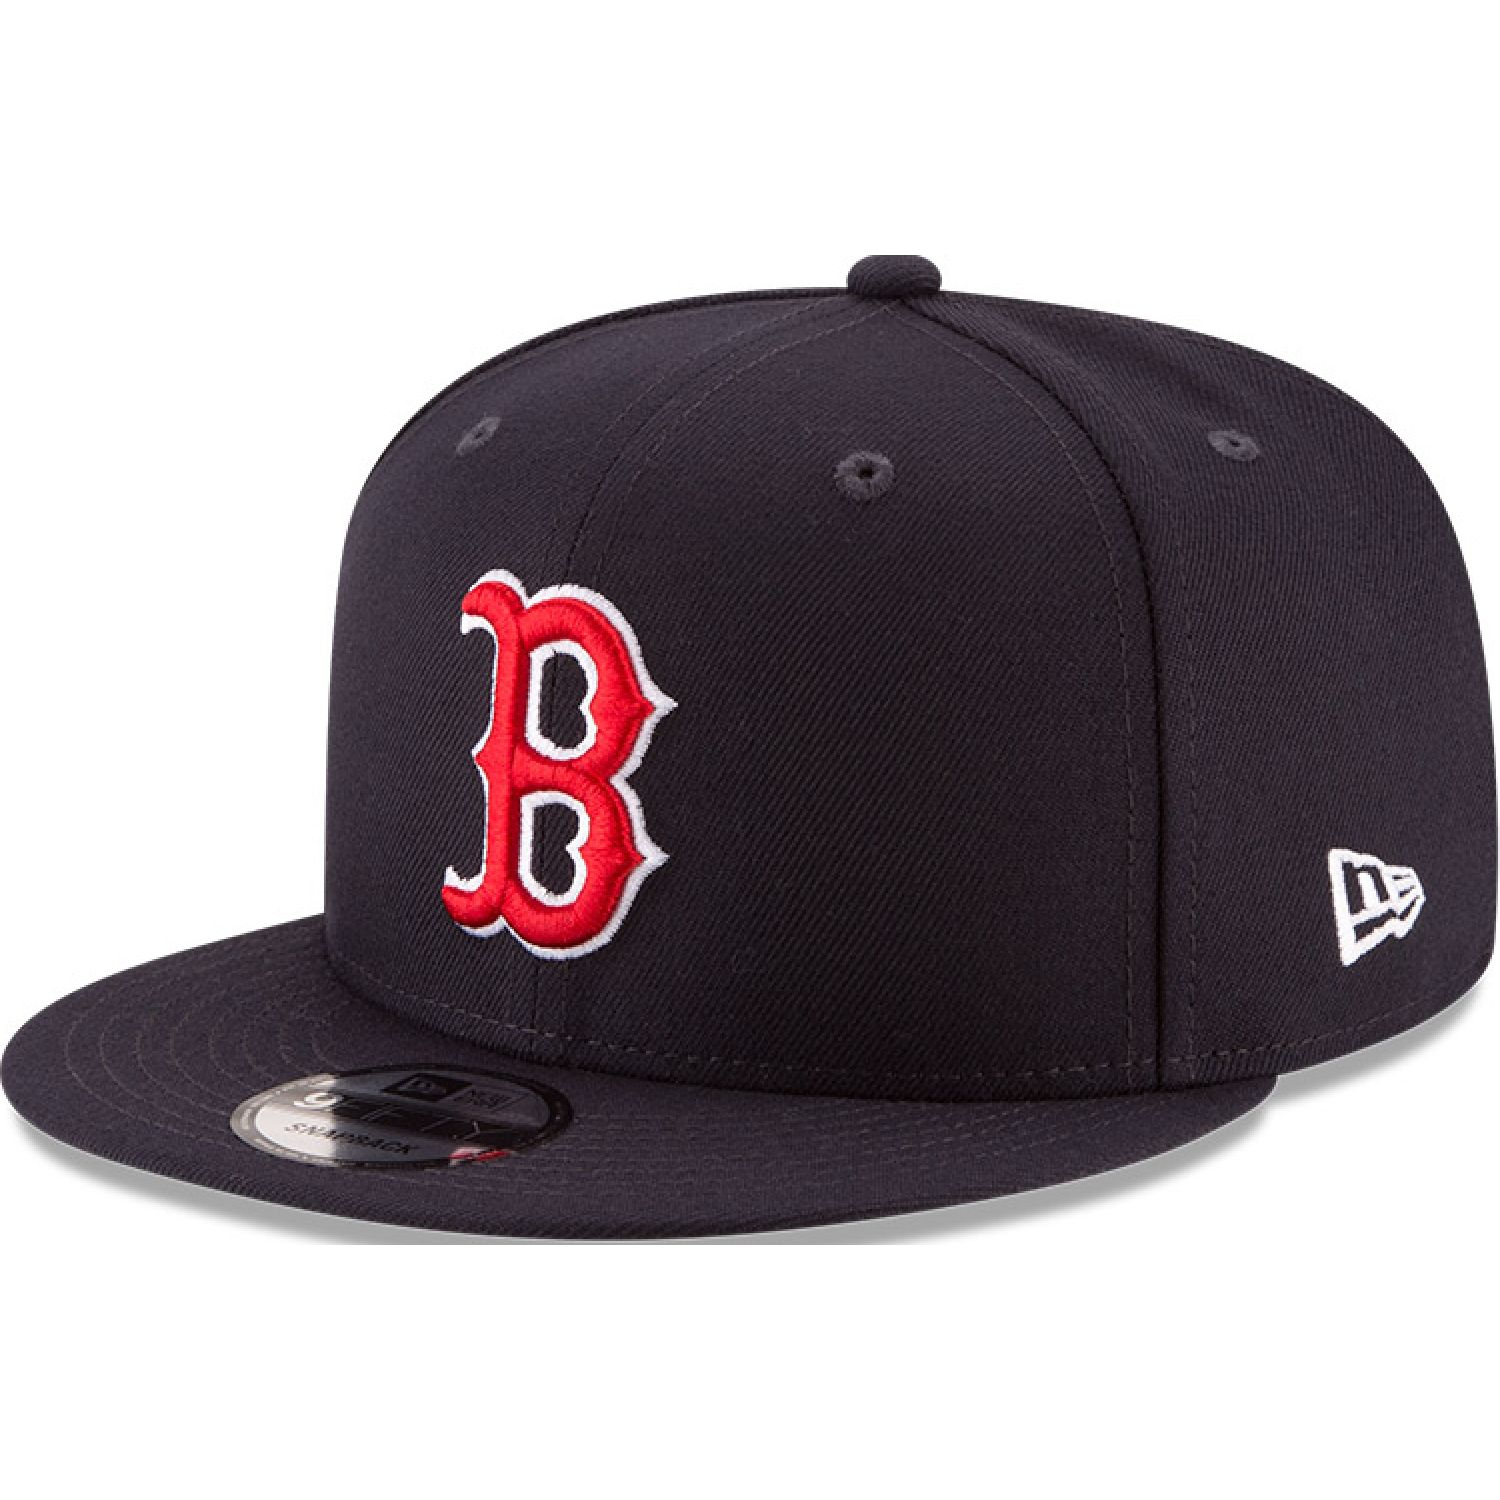 NEW ERA Mlb Basic Snap 950 Bosred Otc Navy Gorras de béisbol